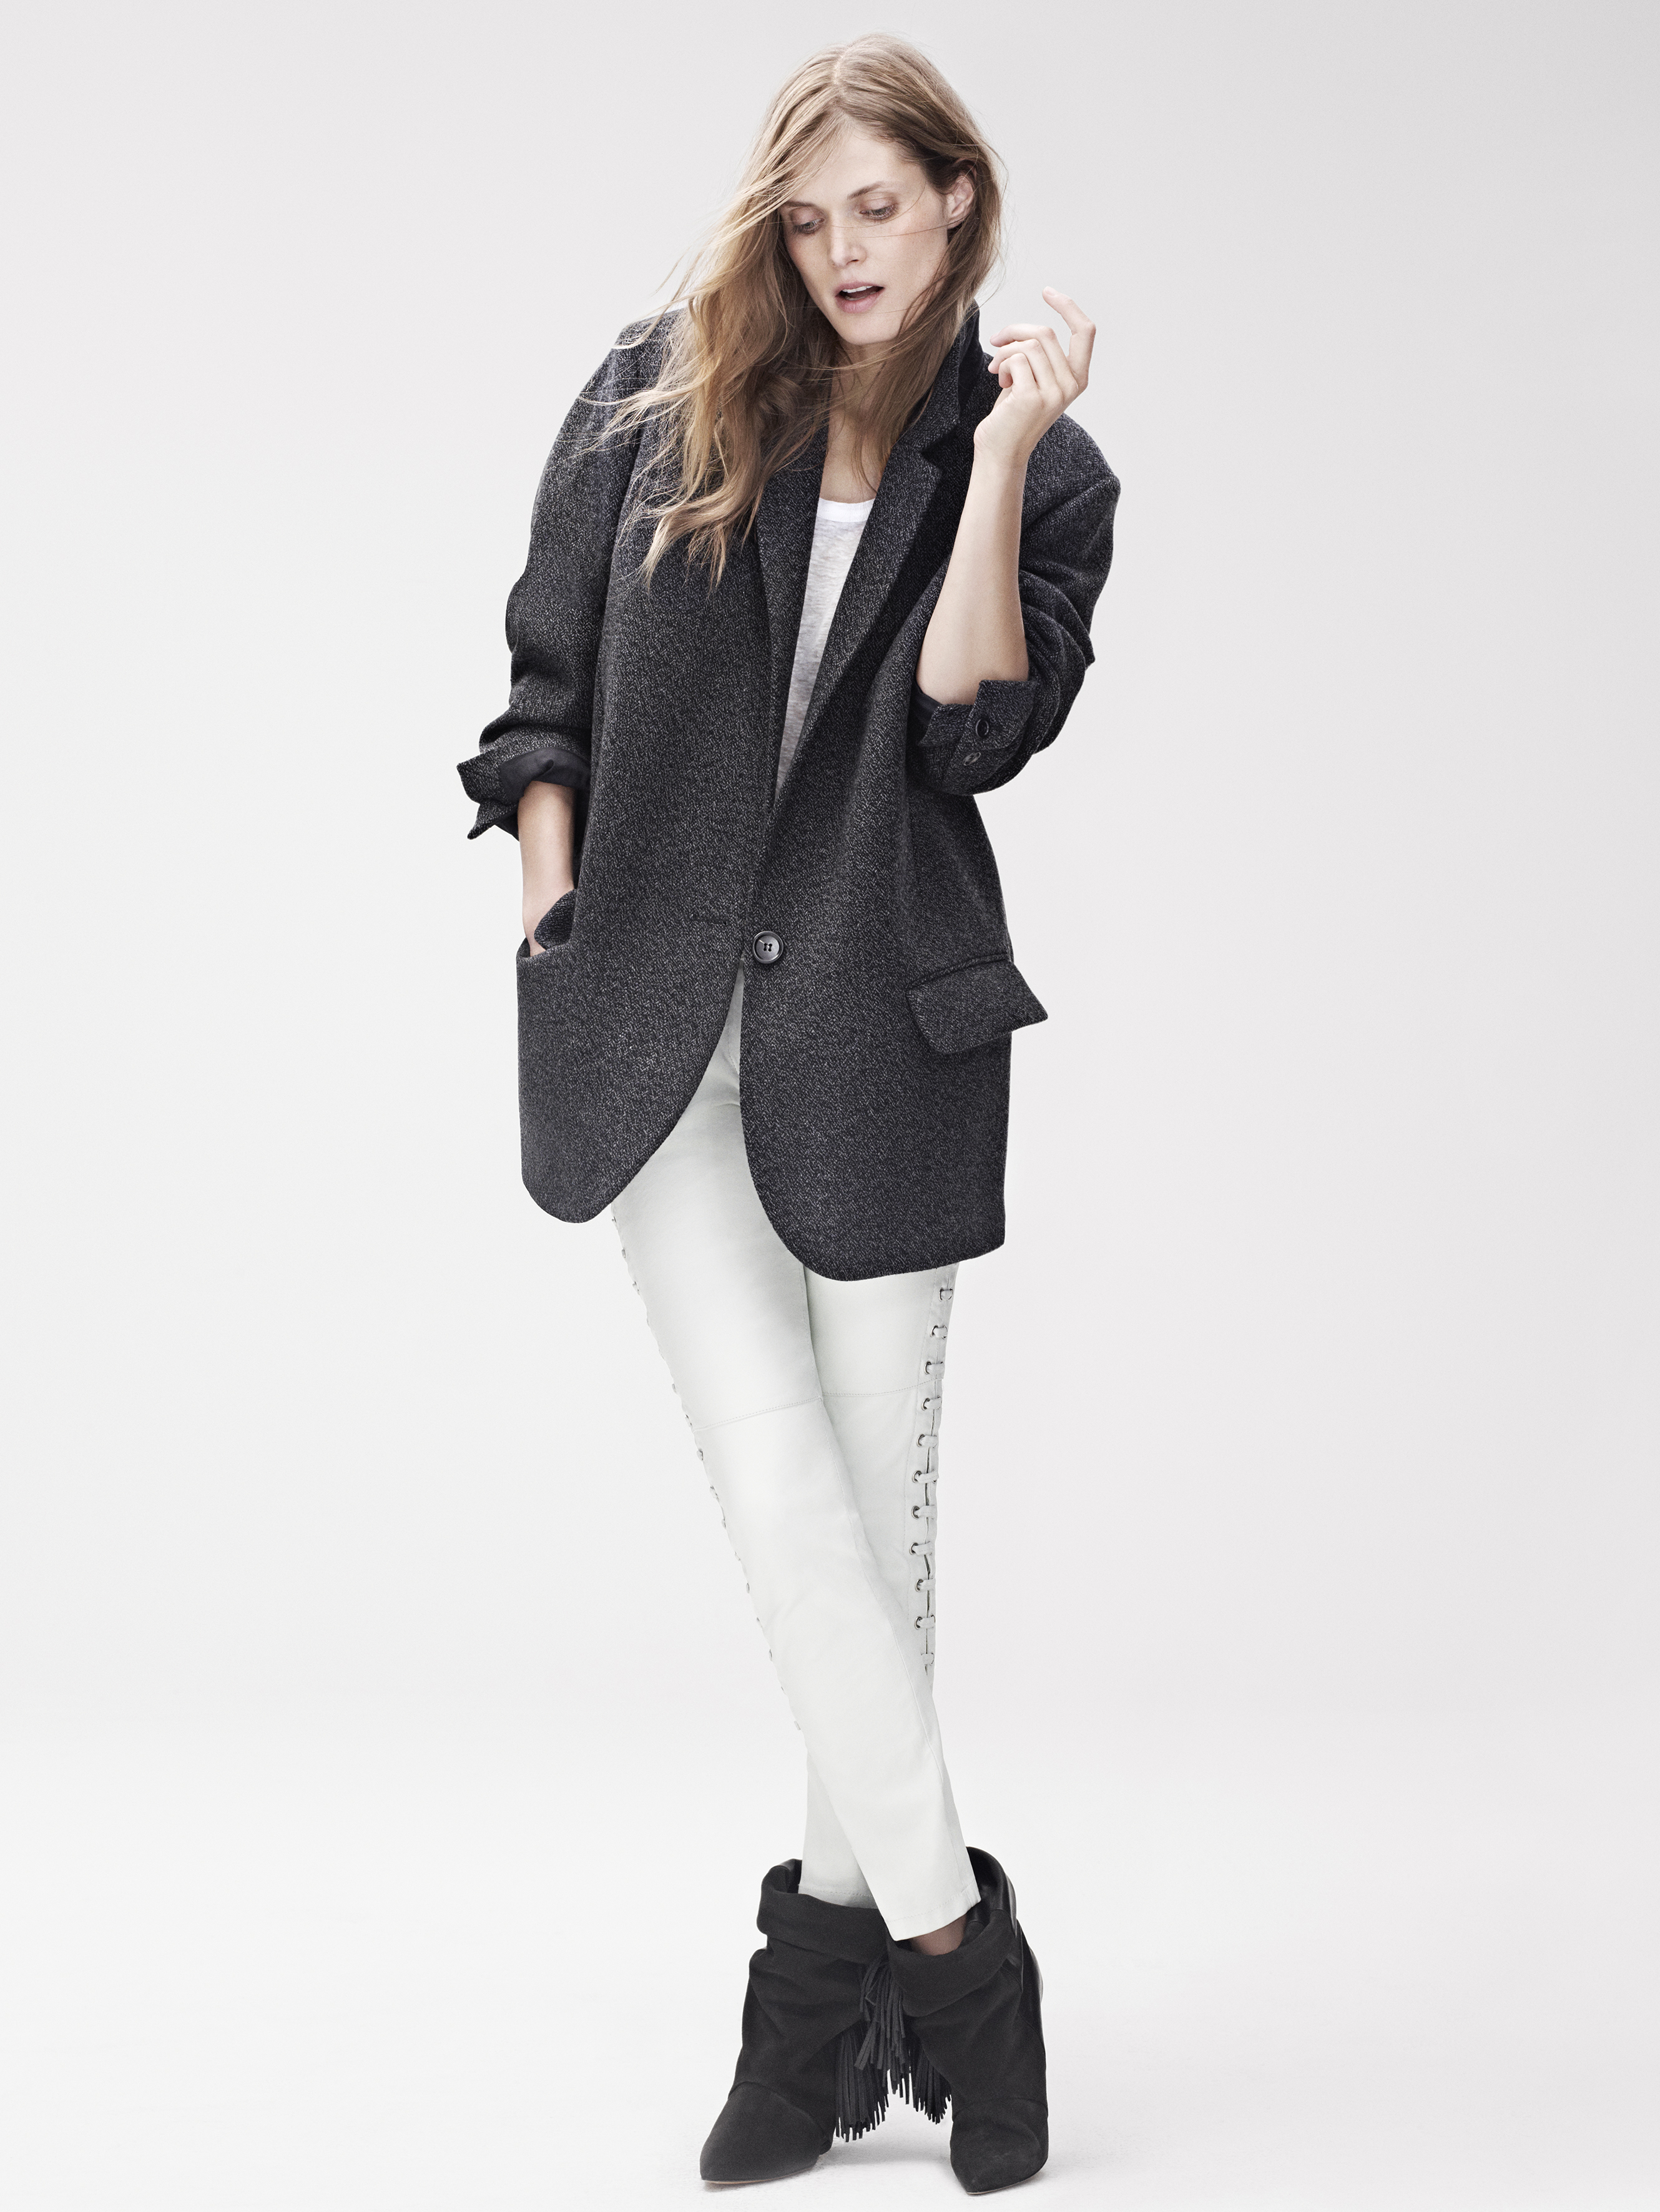 The Isabel Marant pour H&M range finally hits stores – so how did you do?